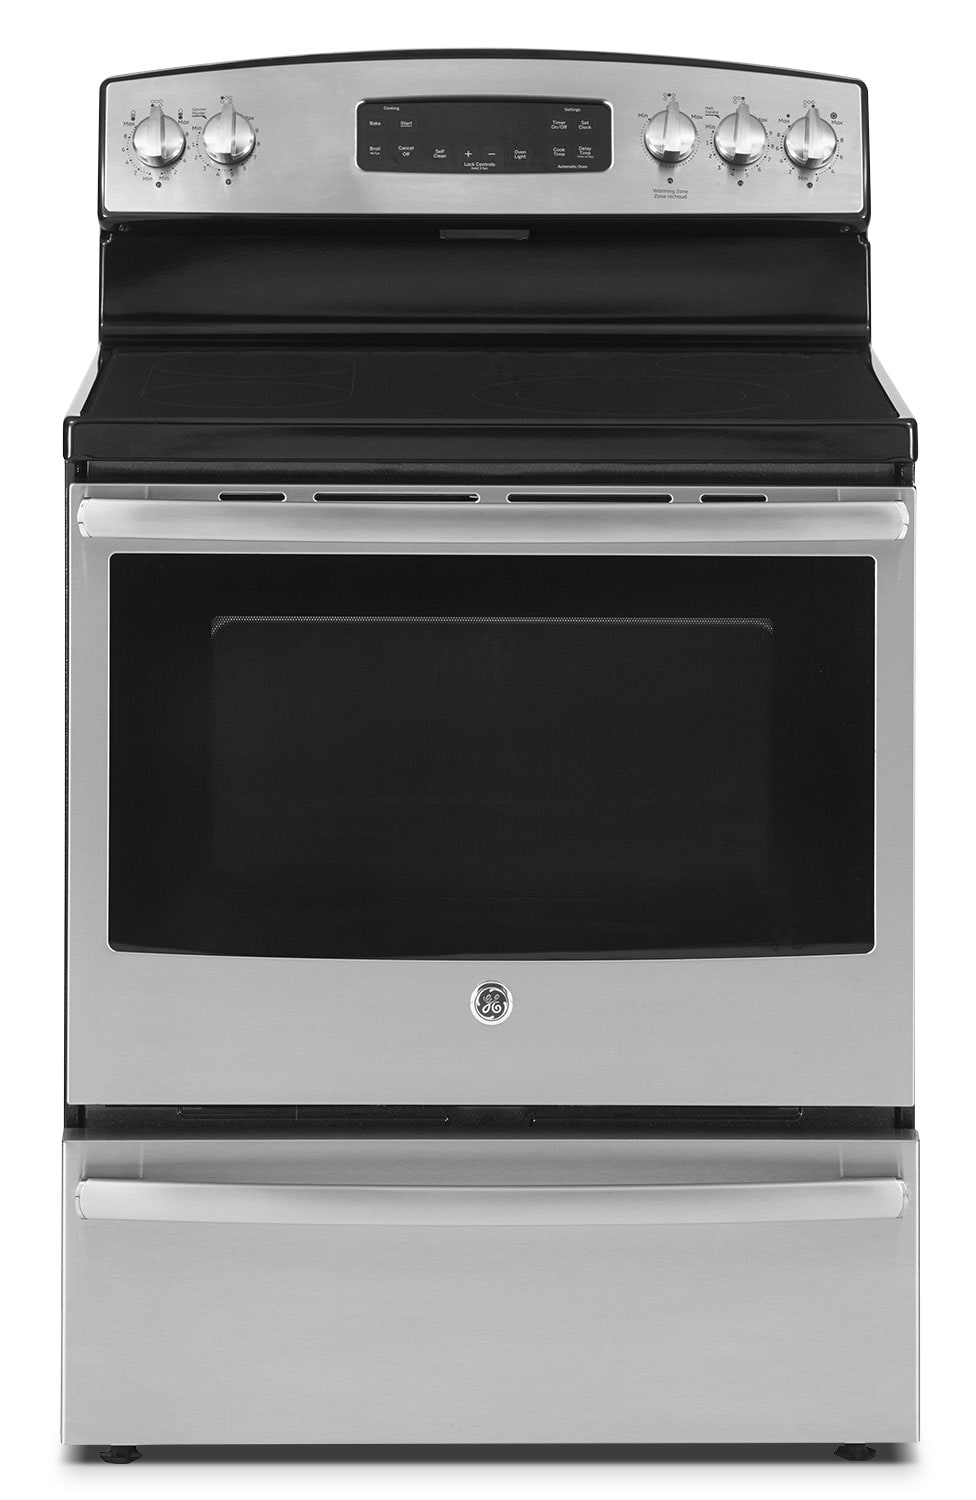 [GE Stainless Steel Freestanding Electric Convection Range (5.0 Cu. Ft.) - JCB860SJSS]